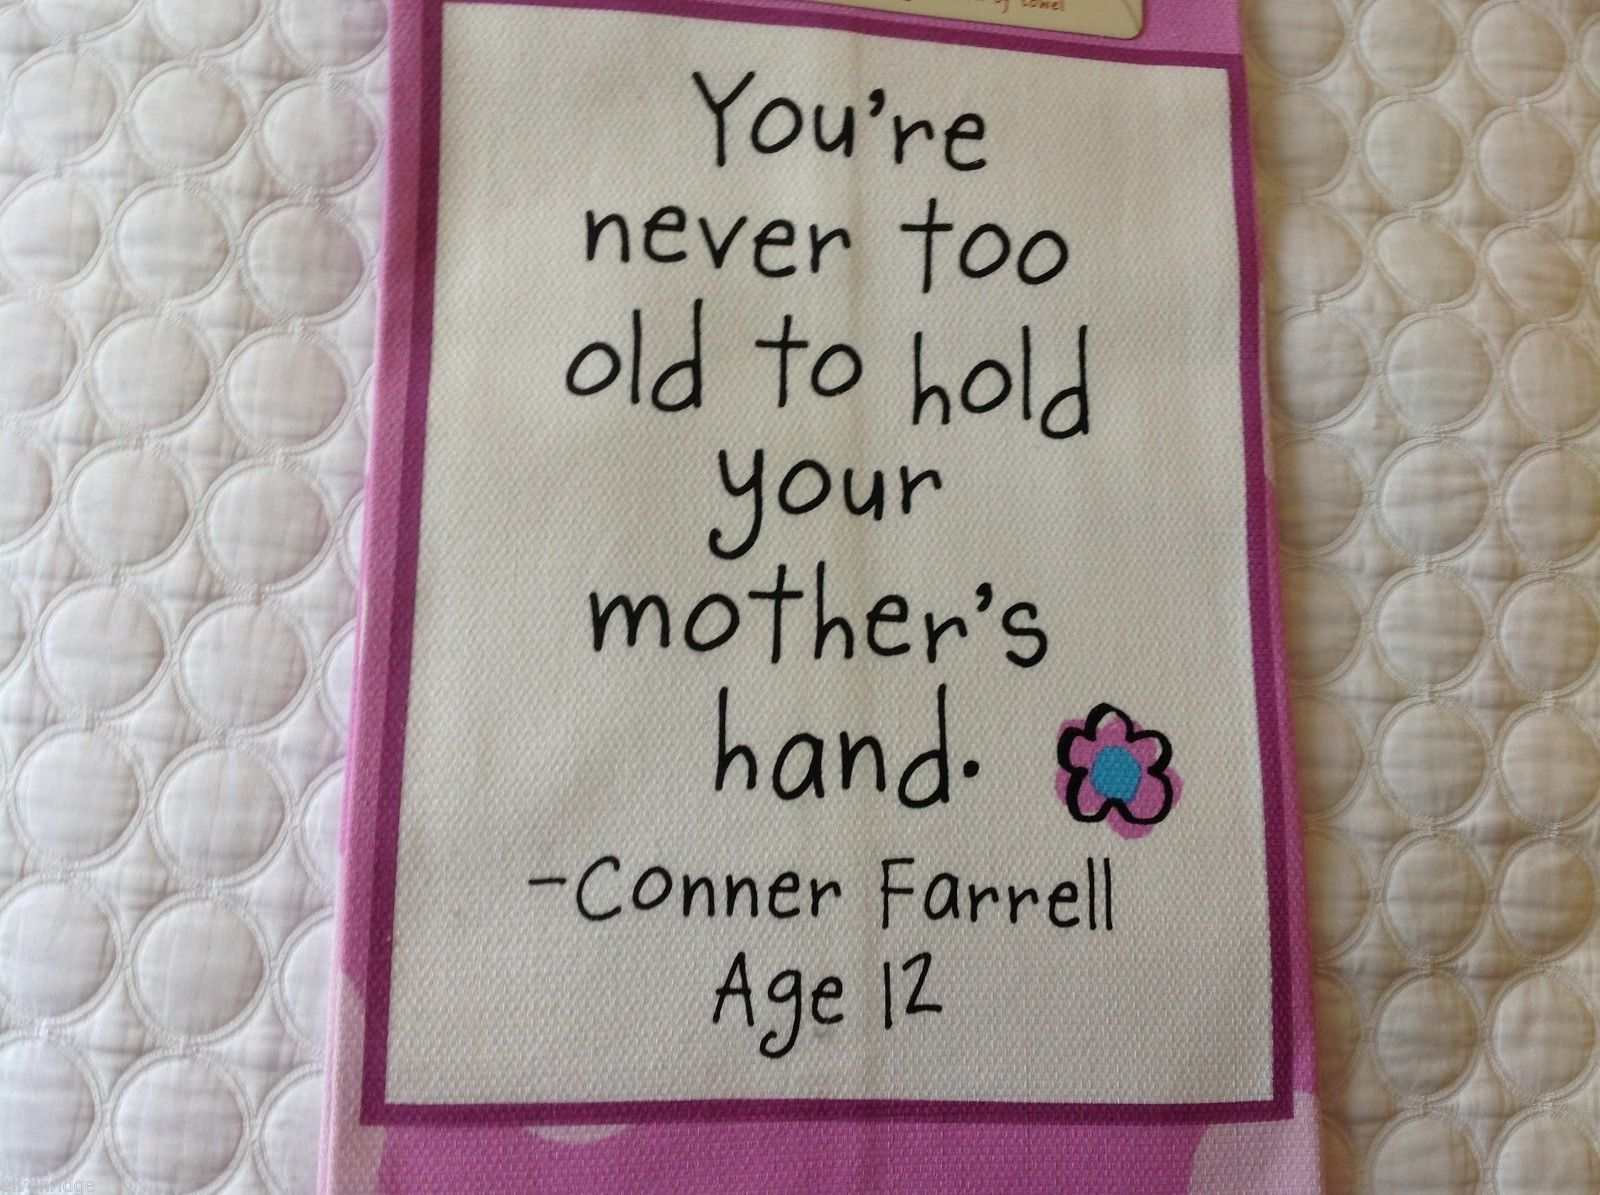 You're Never too old hold mom's hand Cotton kitchen Towel for mother made USA